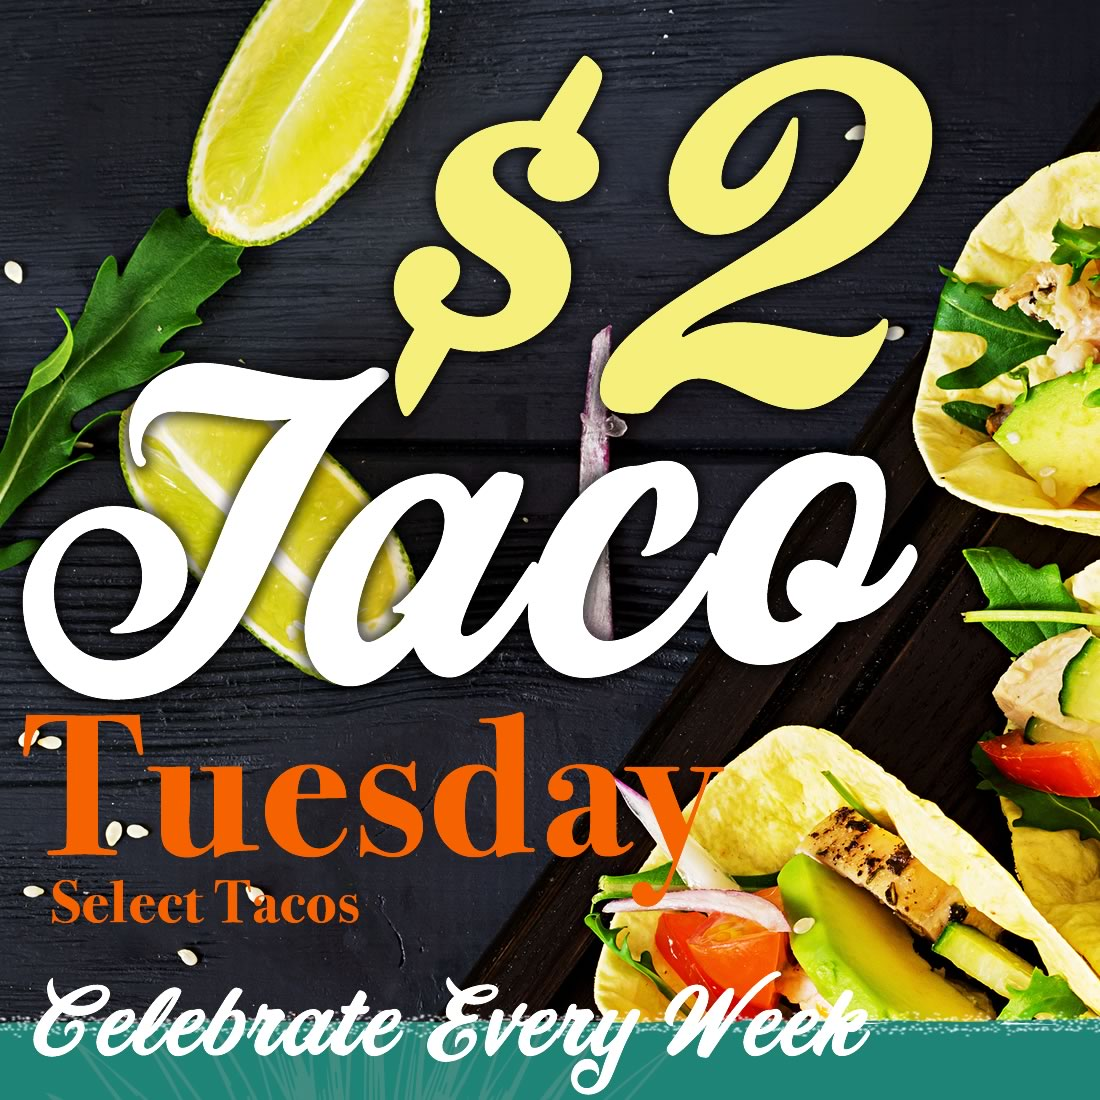 Taco Tuesday at Mezcal Mezcal Mexican Grill | Mezcal Mexican Grill Events and Entertainment